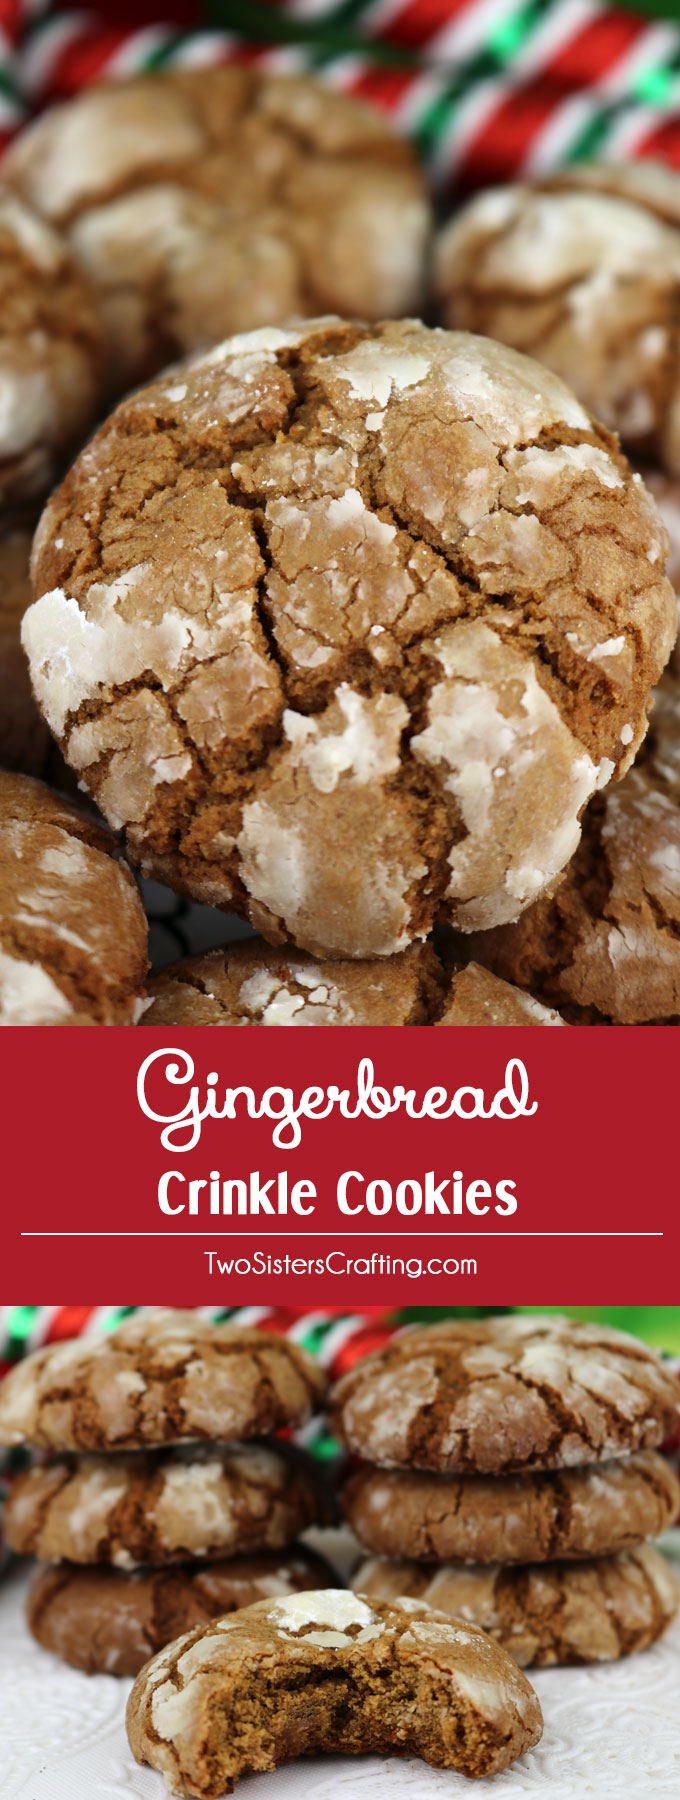 Gingerbread Crinkle Cookies - light, fluffy and spicy on the inside and sweet and crunchy on the outside. A yummy homemade Gingerbread cookie recipe. This classic Christmas cookie recipe is a keeper.  This fun and easy treat would be a great Christmas dessert idea for a Christmas Party, a holiday gift basket or a Christmas Cookie exchange. Pin this easy Holiday cookie recipe for later and follow us for more great Christmas Food ideas. #ChristmasCookies #ChristmasDesserts #ChristmasTreats